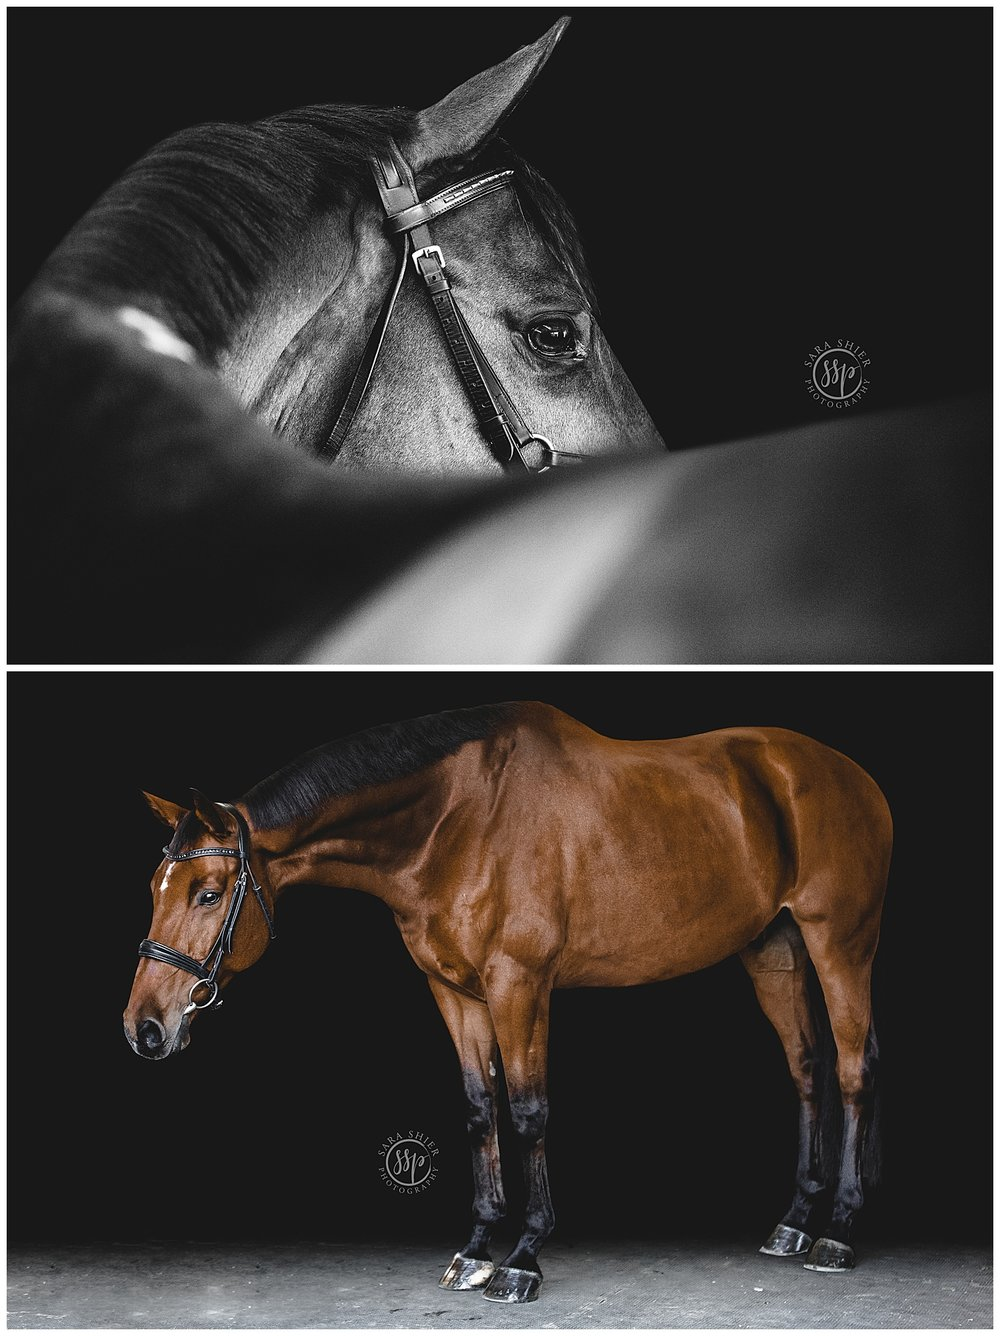 Black Background Horse Rider Equine Photographer Southern California Sara Shier Photography SoCal Equestrian Cowgirl_0255.jpg